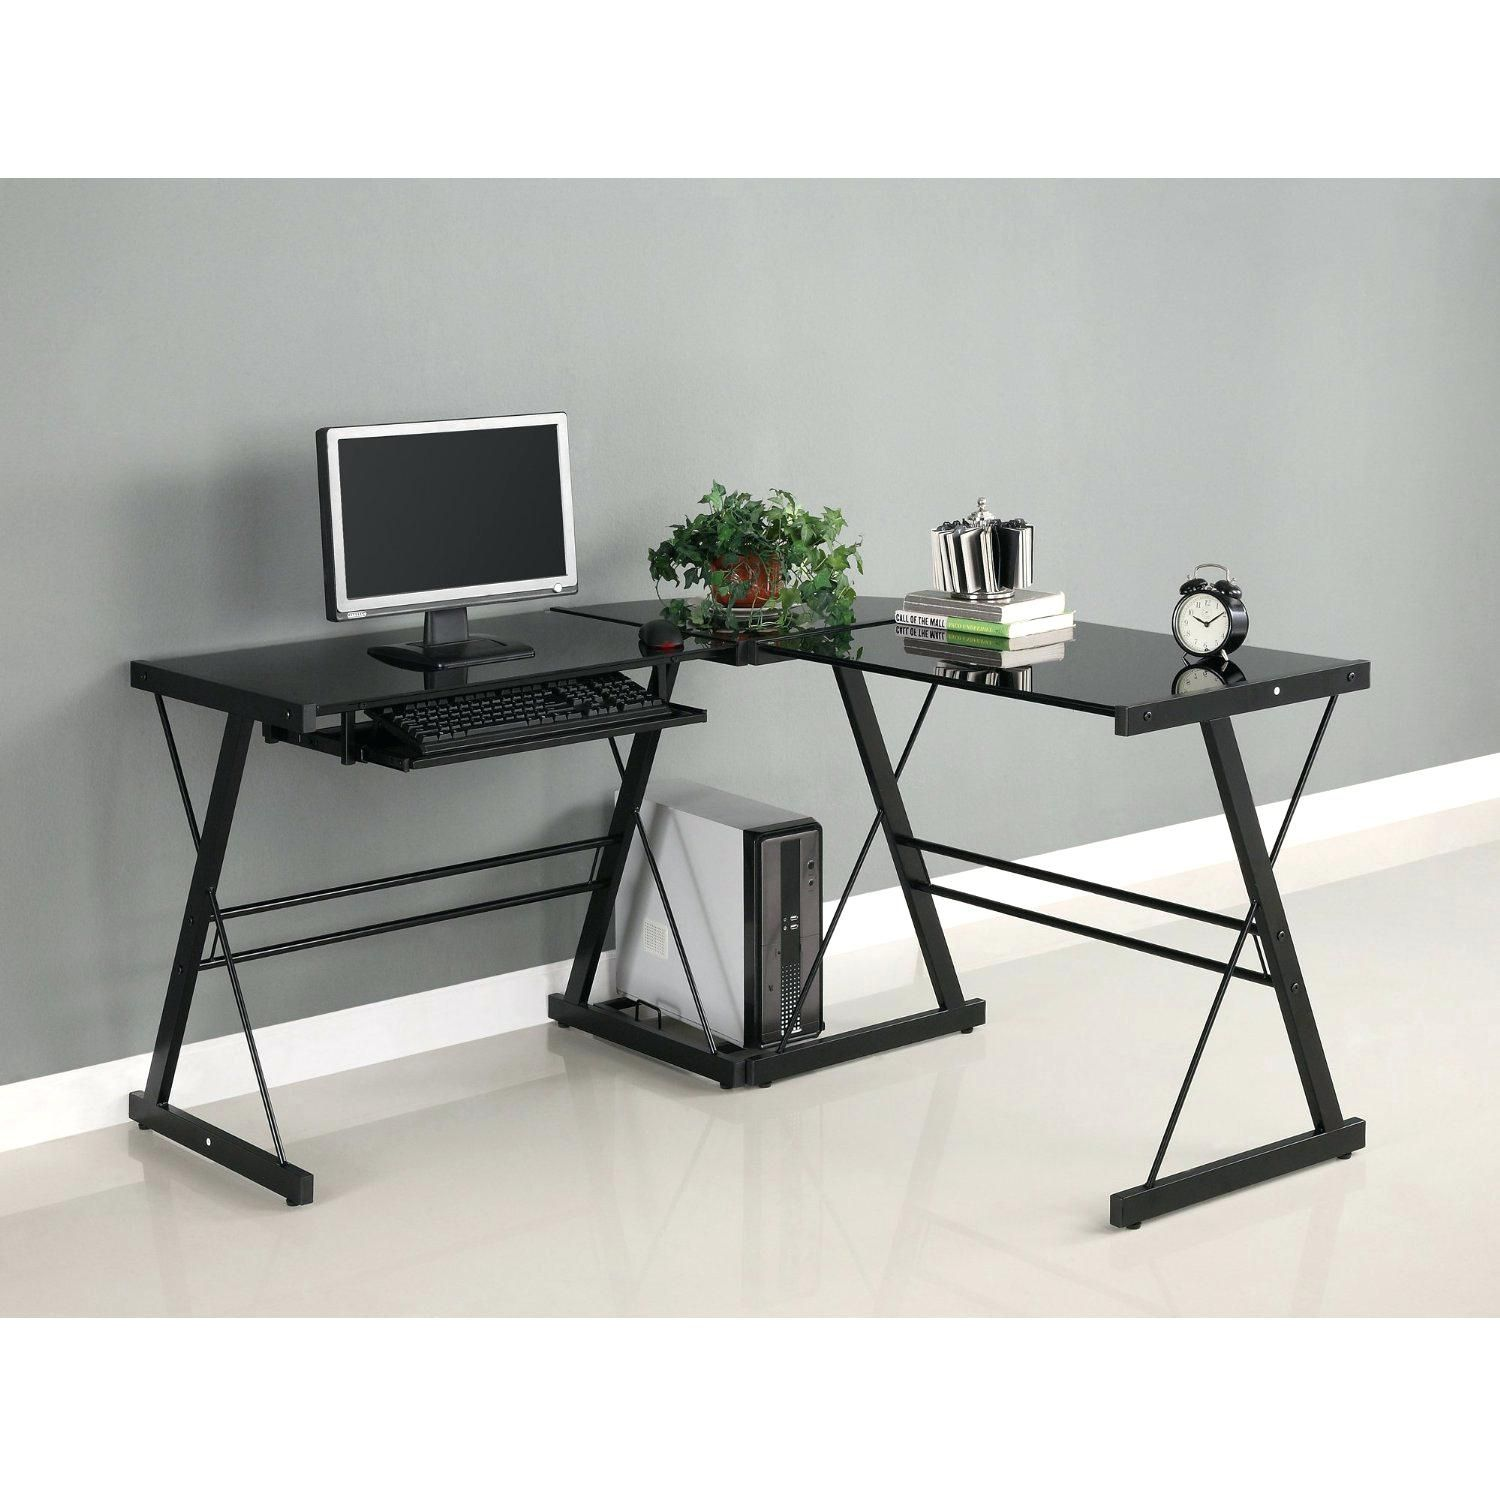 Black style Metal L Shaped Corner puter Desk with Glass Top